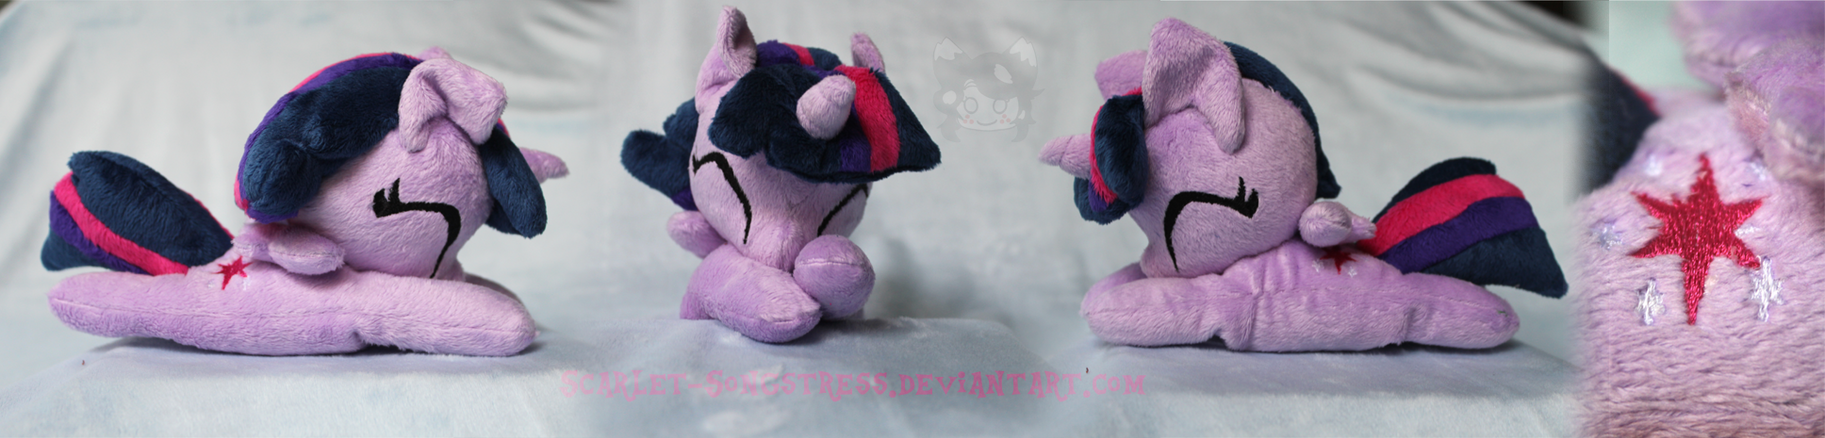 Commission: Chibi Smiling Alicorn Twilight Sparkle by Scarlet-Songstress